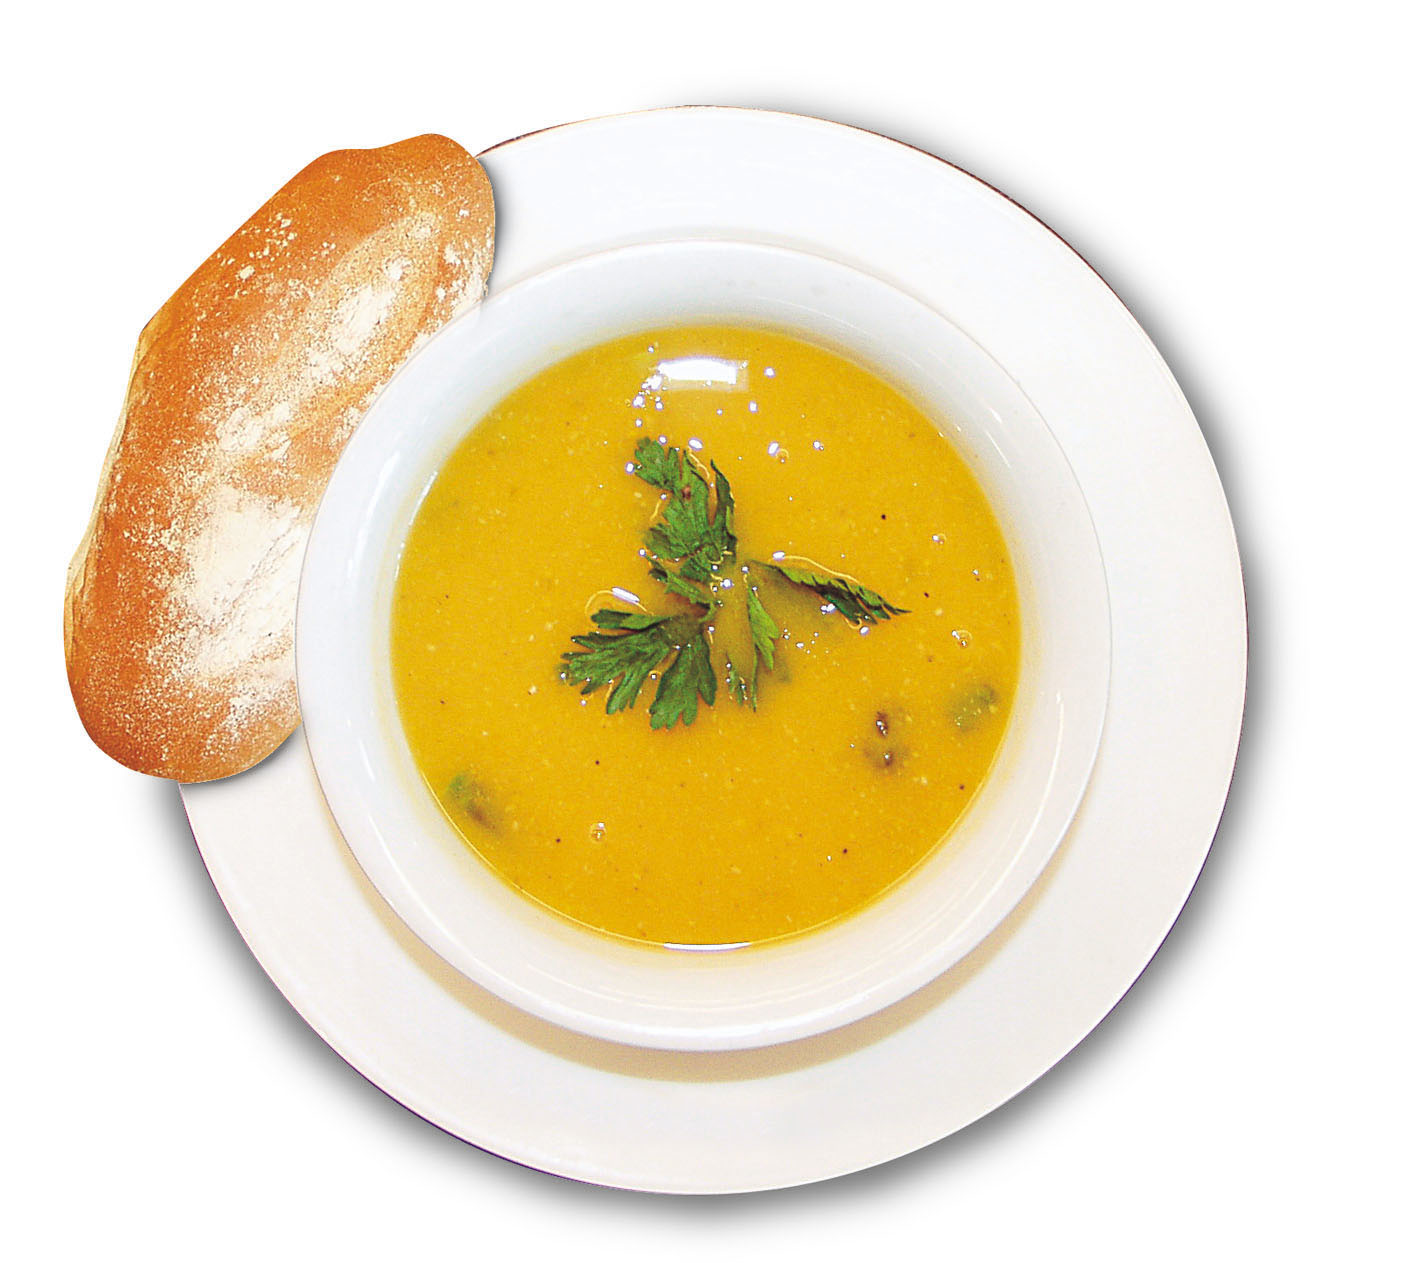 Mr Gift: RECIPE OF THE WEEK: Thai spiced pumpkin soup